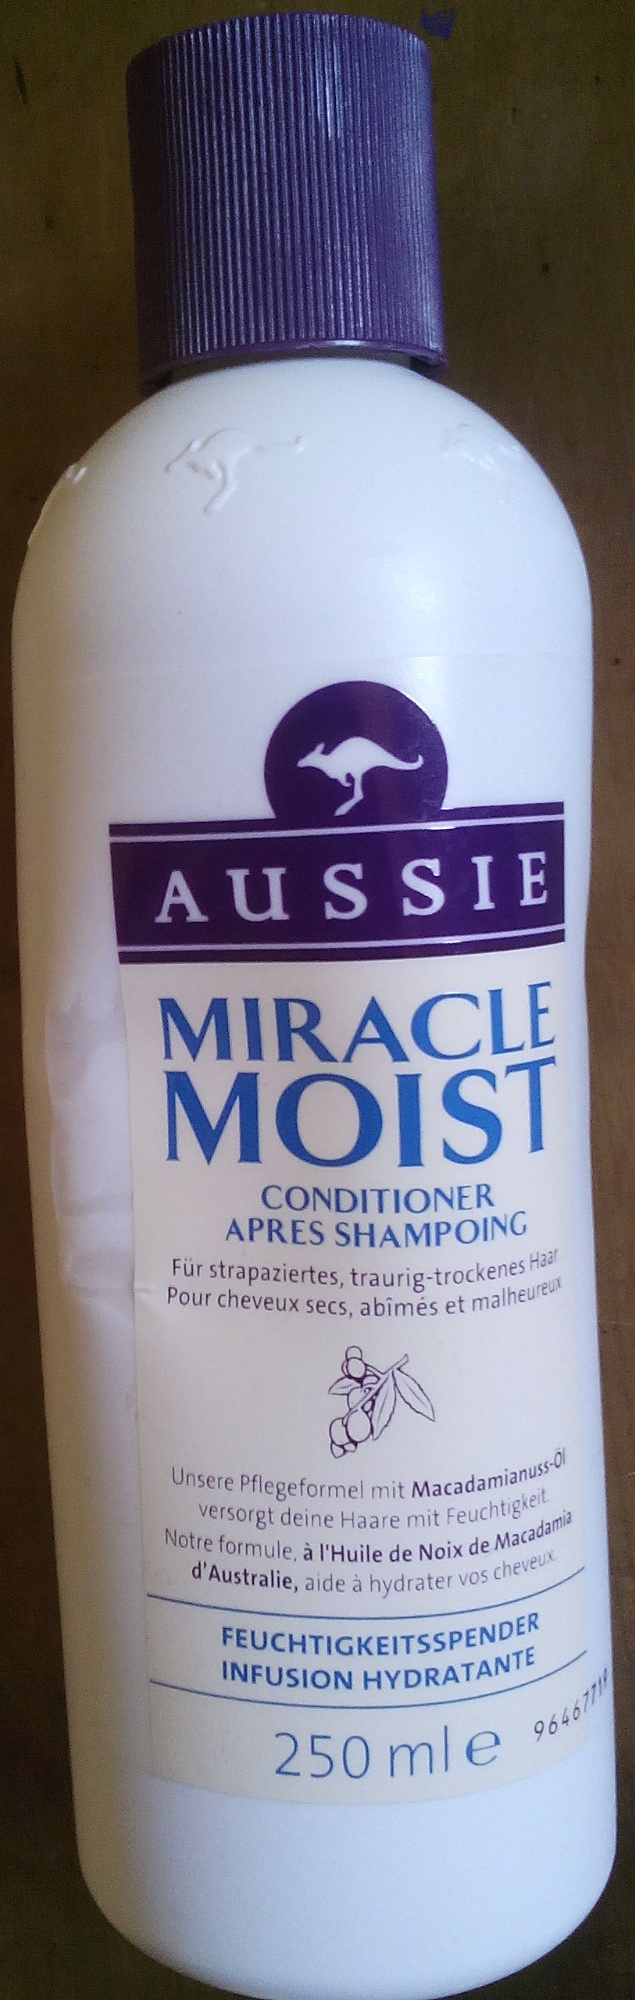 Miracle Moist Après-shampoing - Product - fr